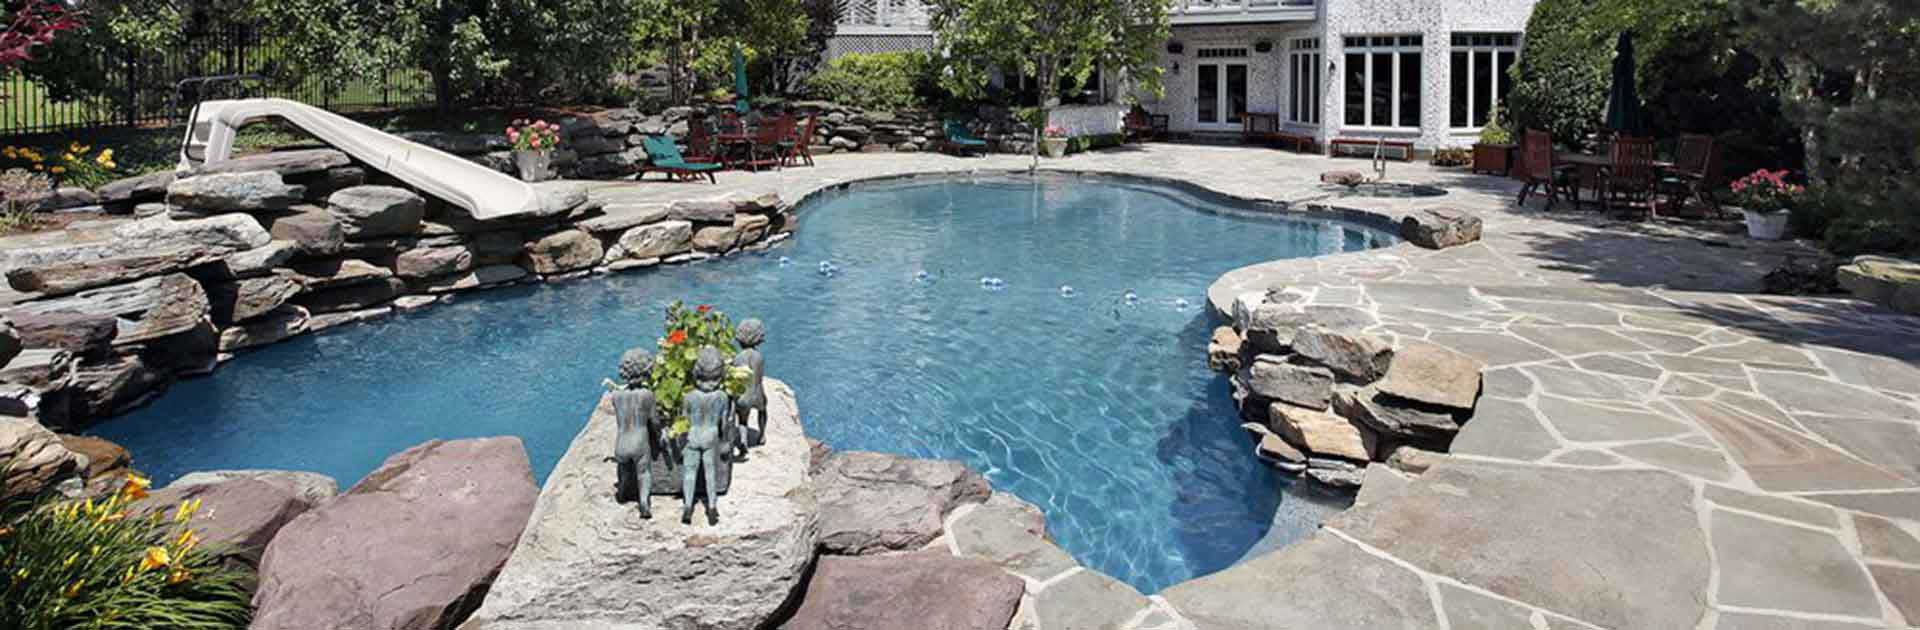 Hardscaping pool